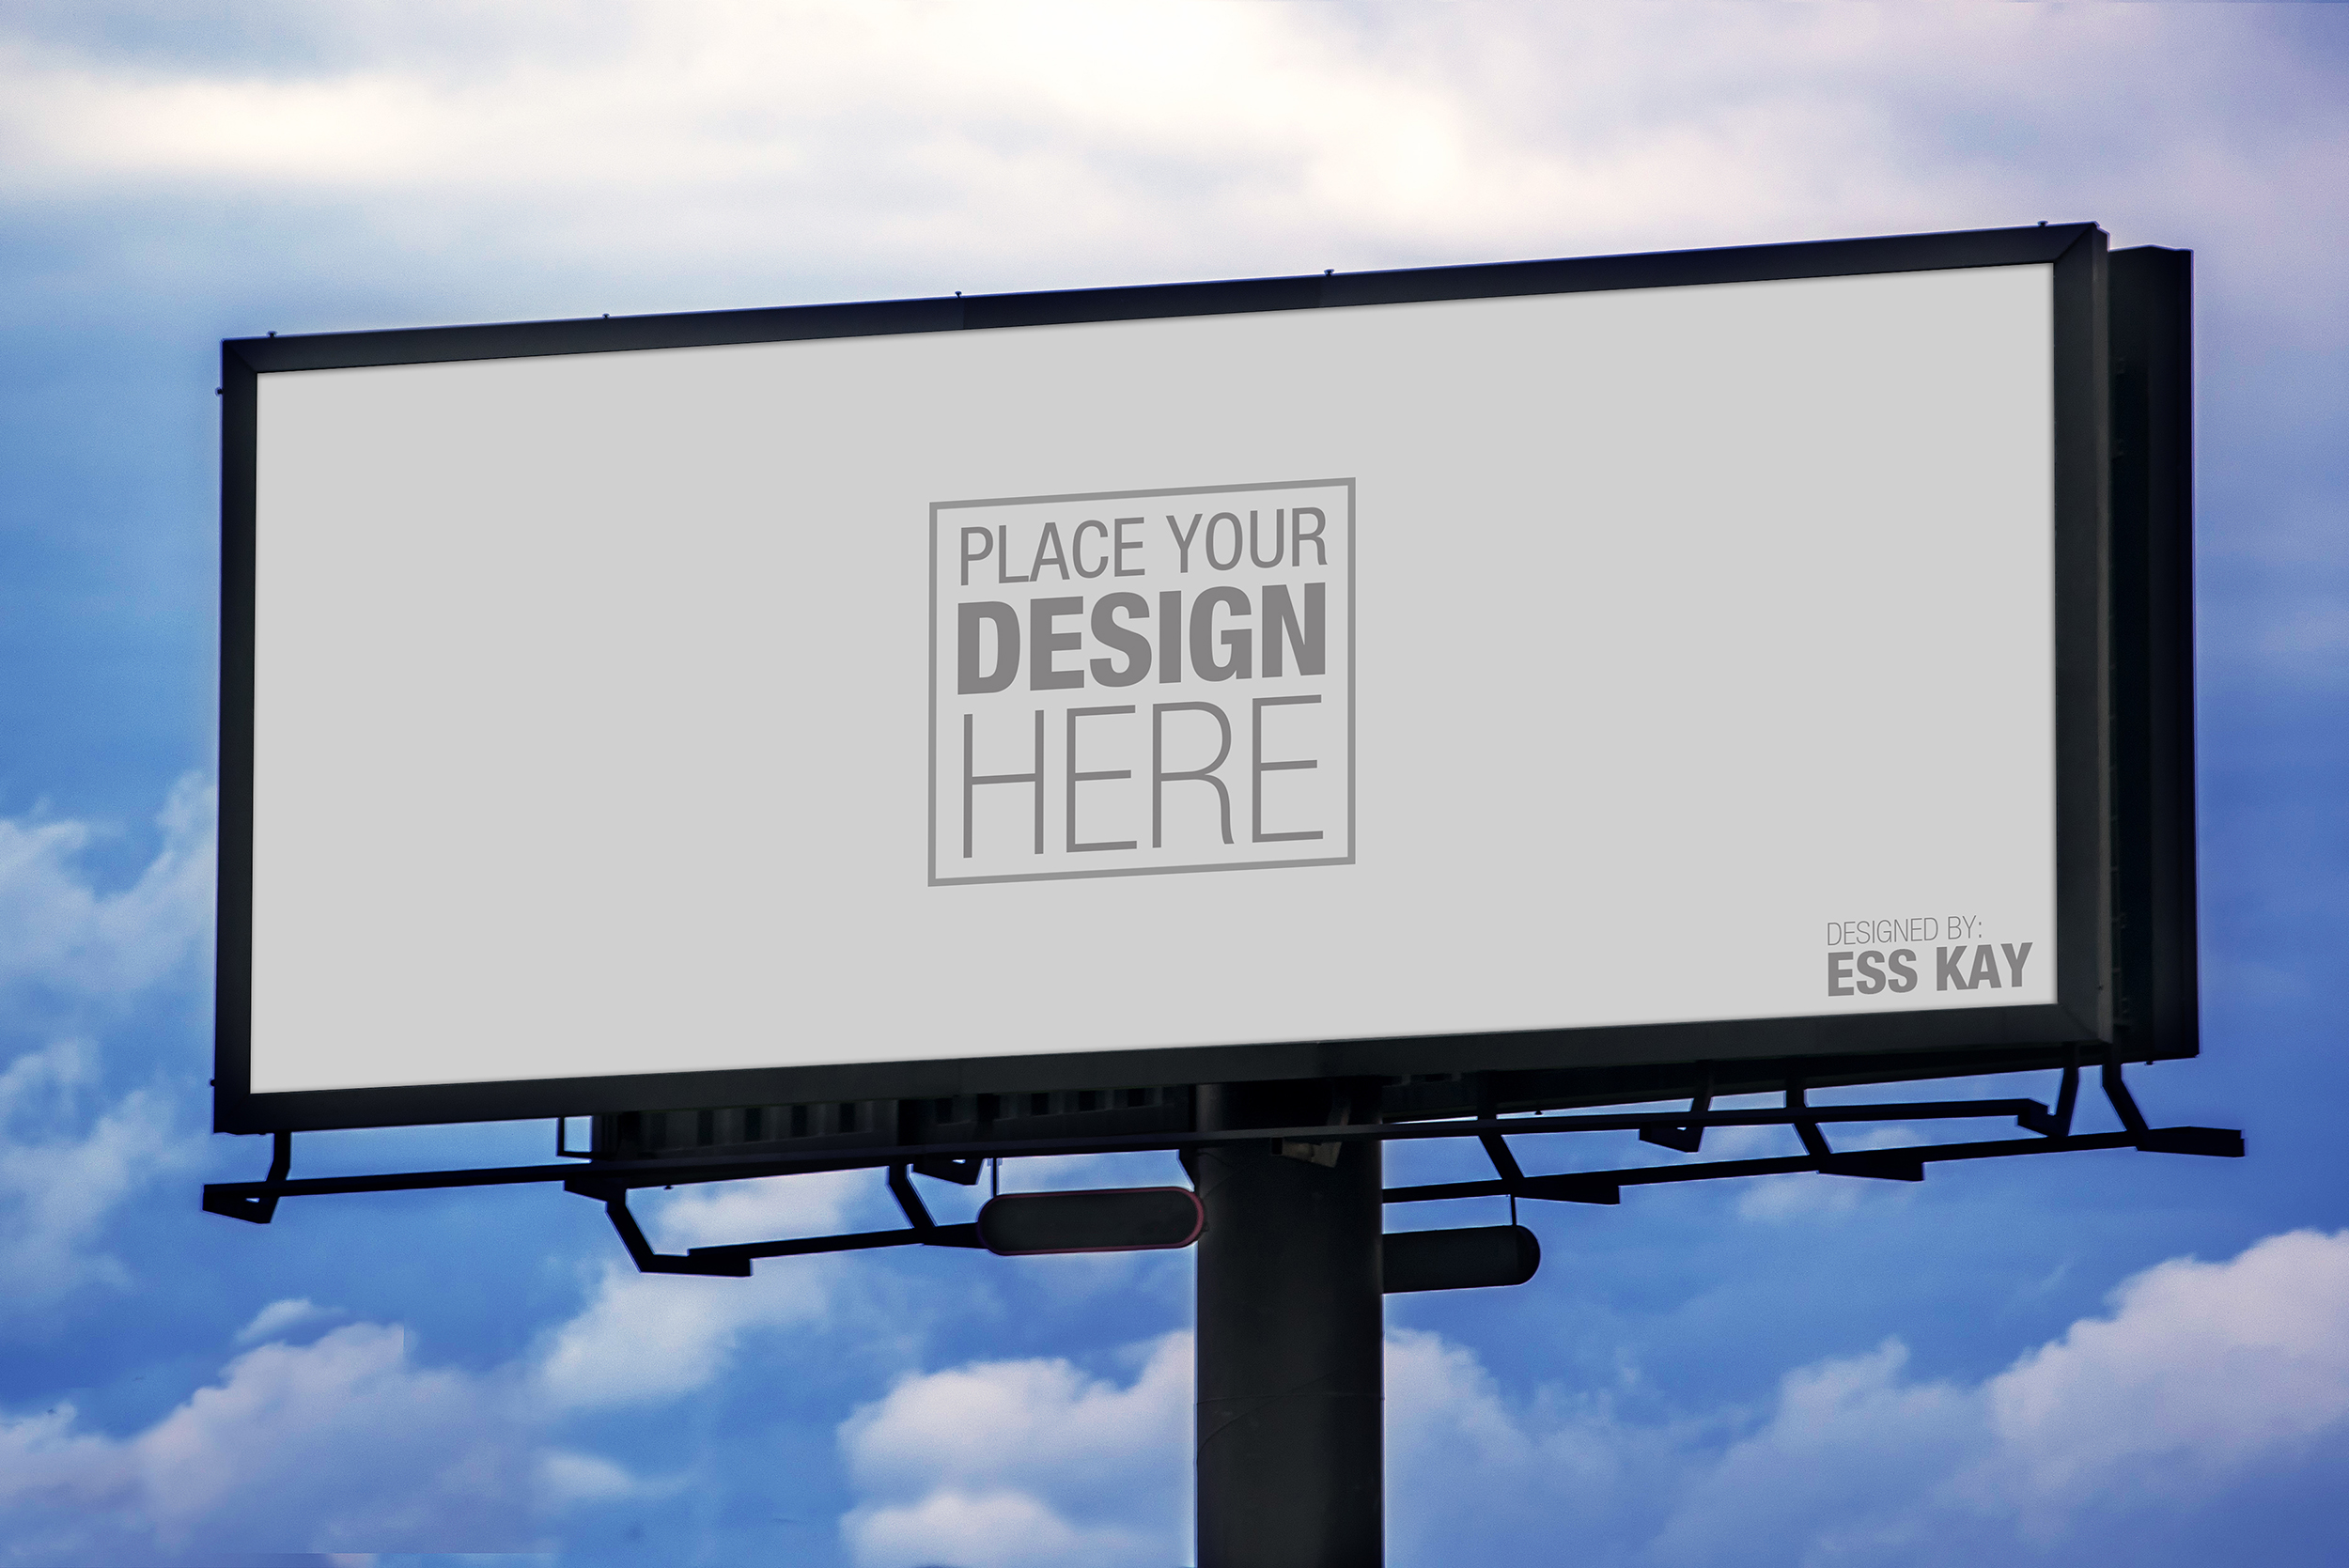 billboard mockup template images galleries with a bite. Black Bedroom Furniture Sets. Home Design Ideas